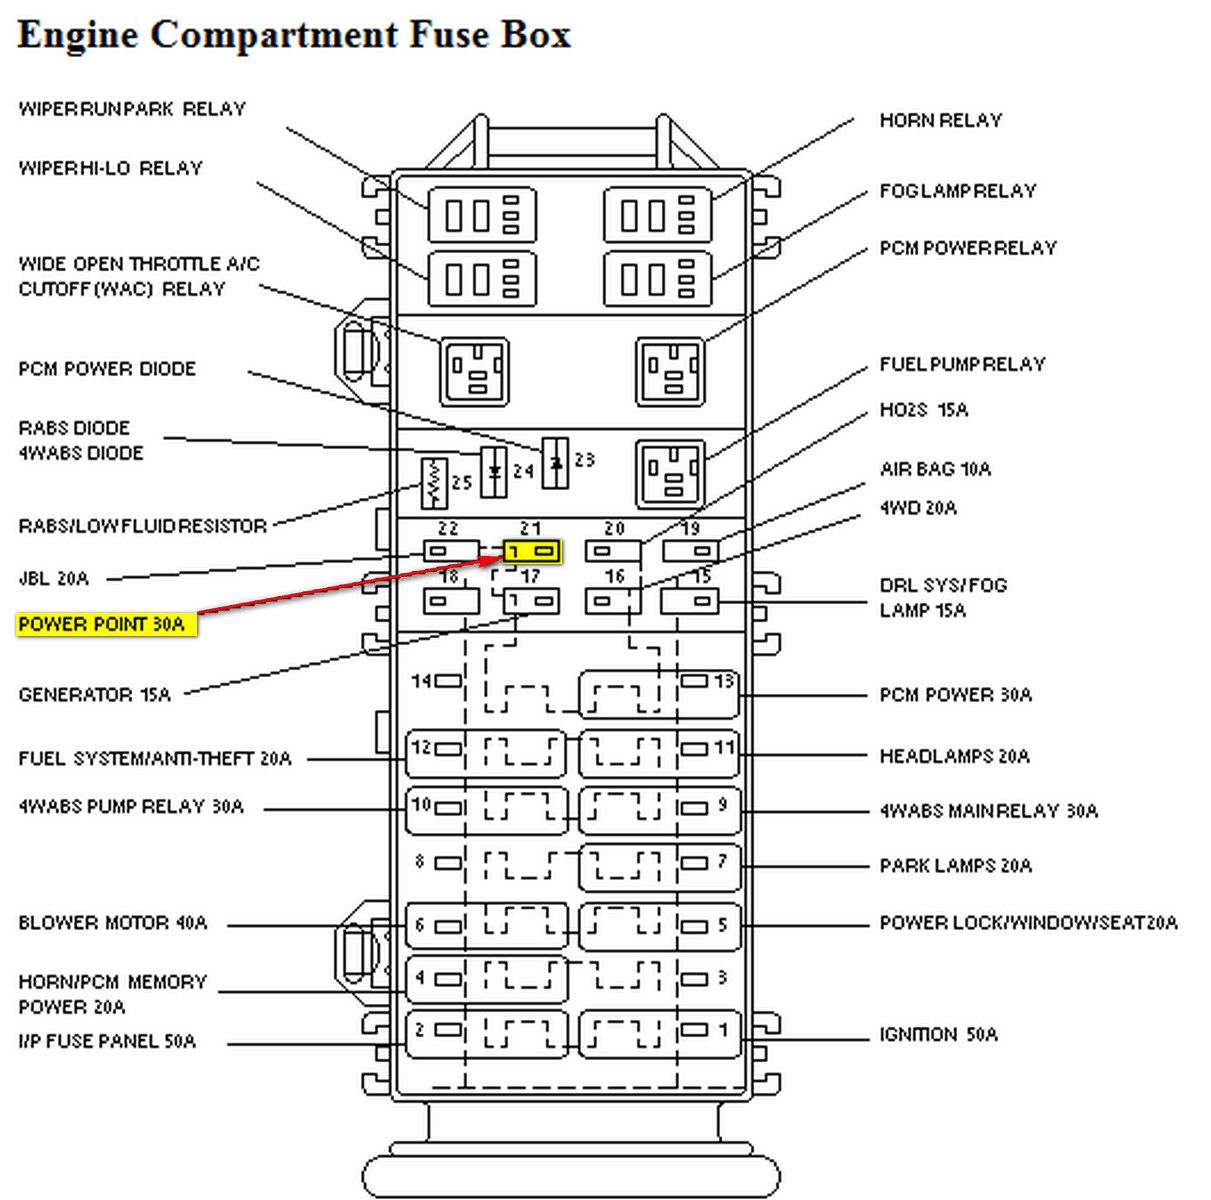 8a55967da7ae1bd251b795845886bd24 2002 ford ranger fuse diagram 1997 ford ranger fuse box diagram 2012 ford edge fuse box diagram at creativeand.co